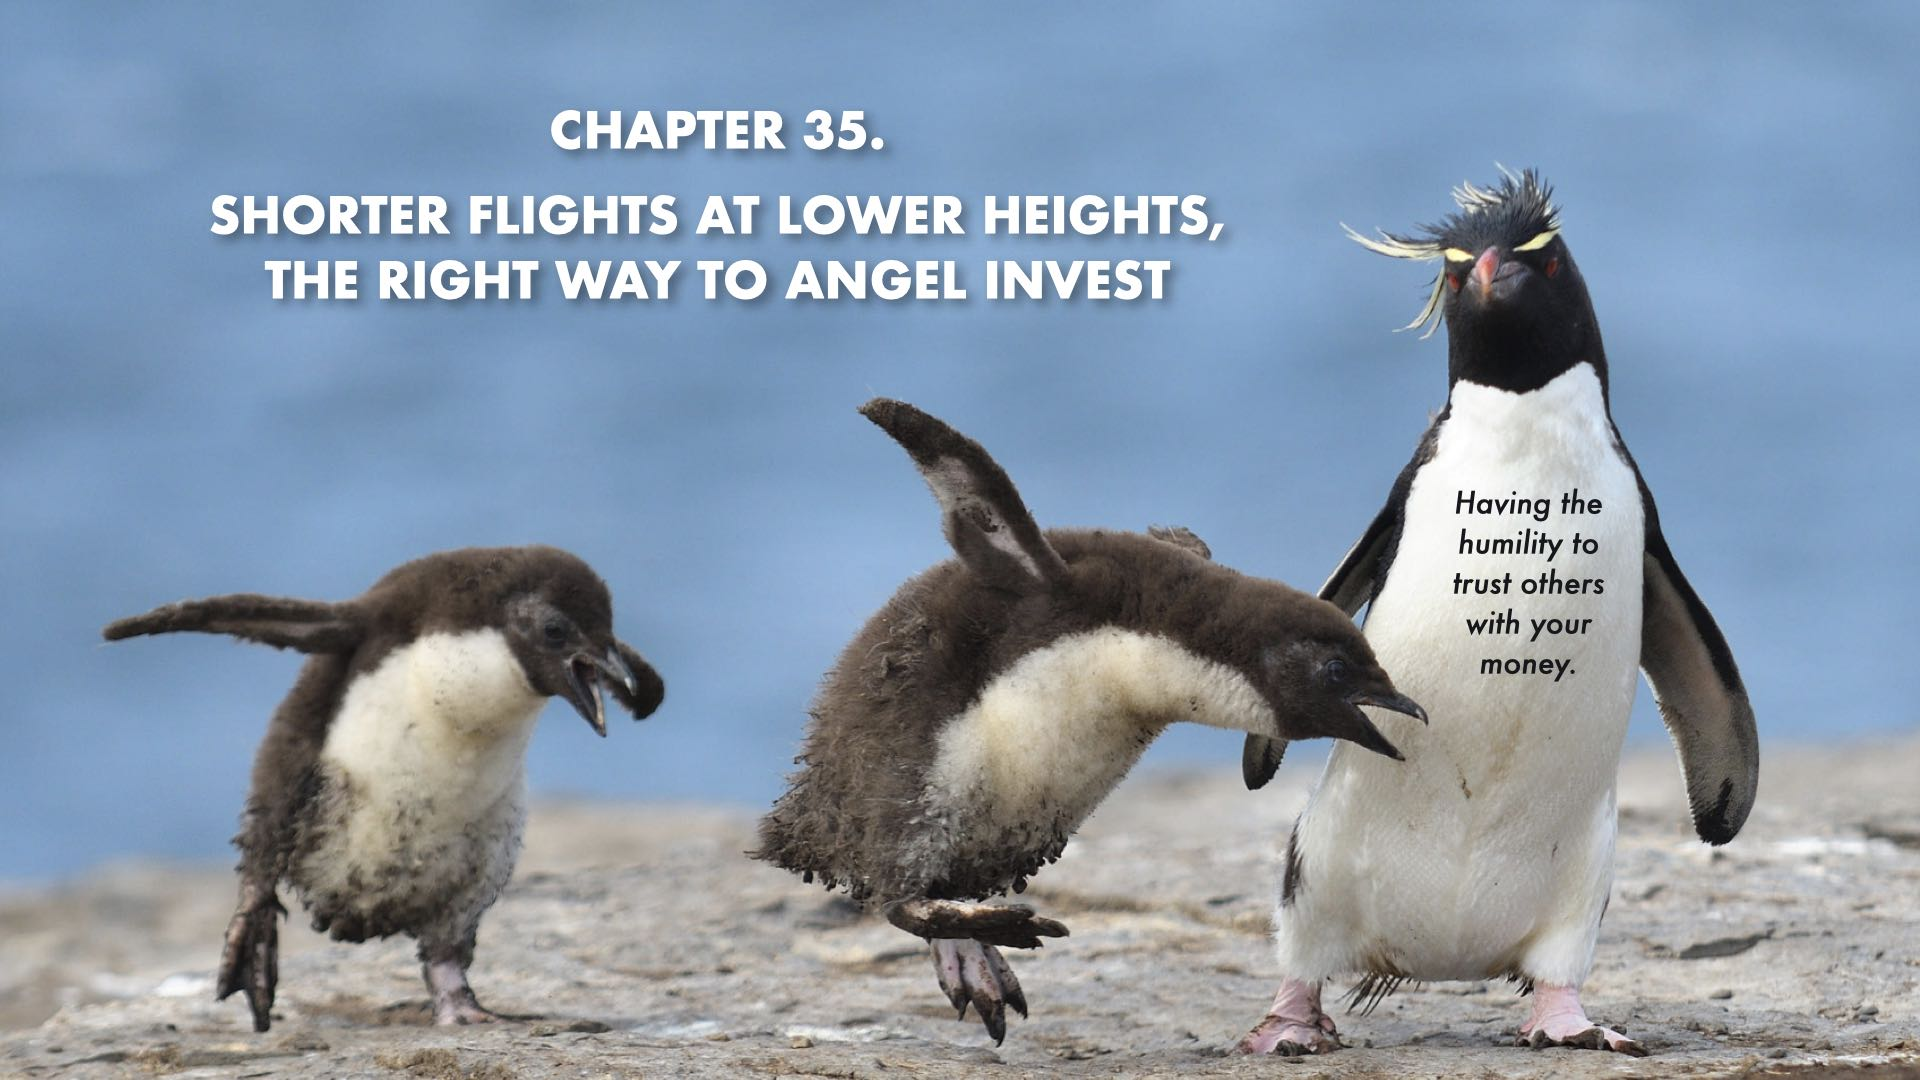 Shorter Flights At Lower Heights: The Right Way to Angel Invest